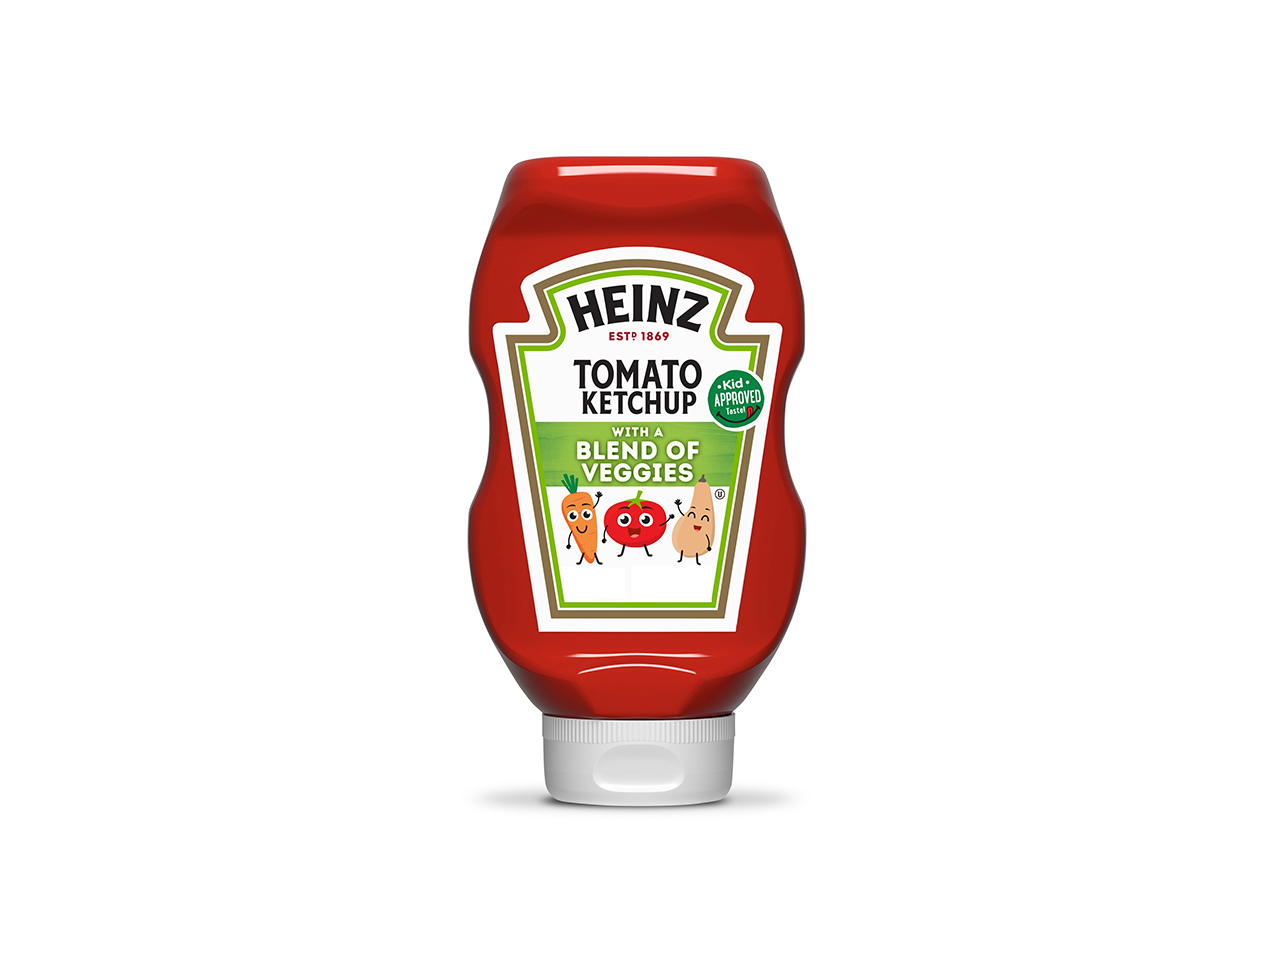 image of a bottle of heinz ketchup with veggies